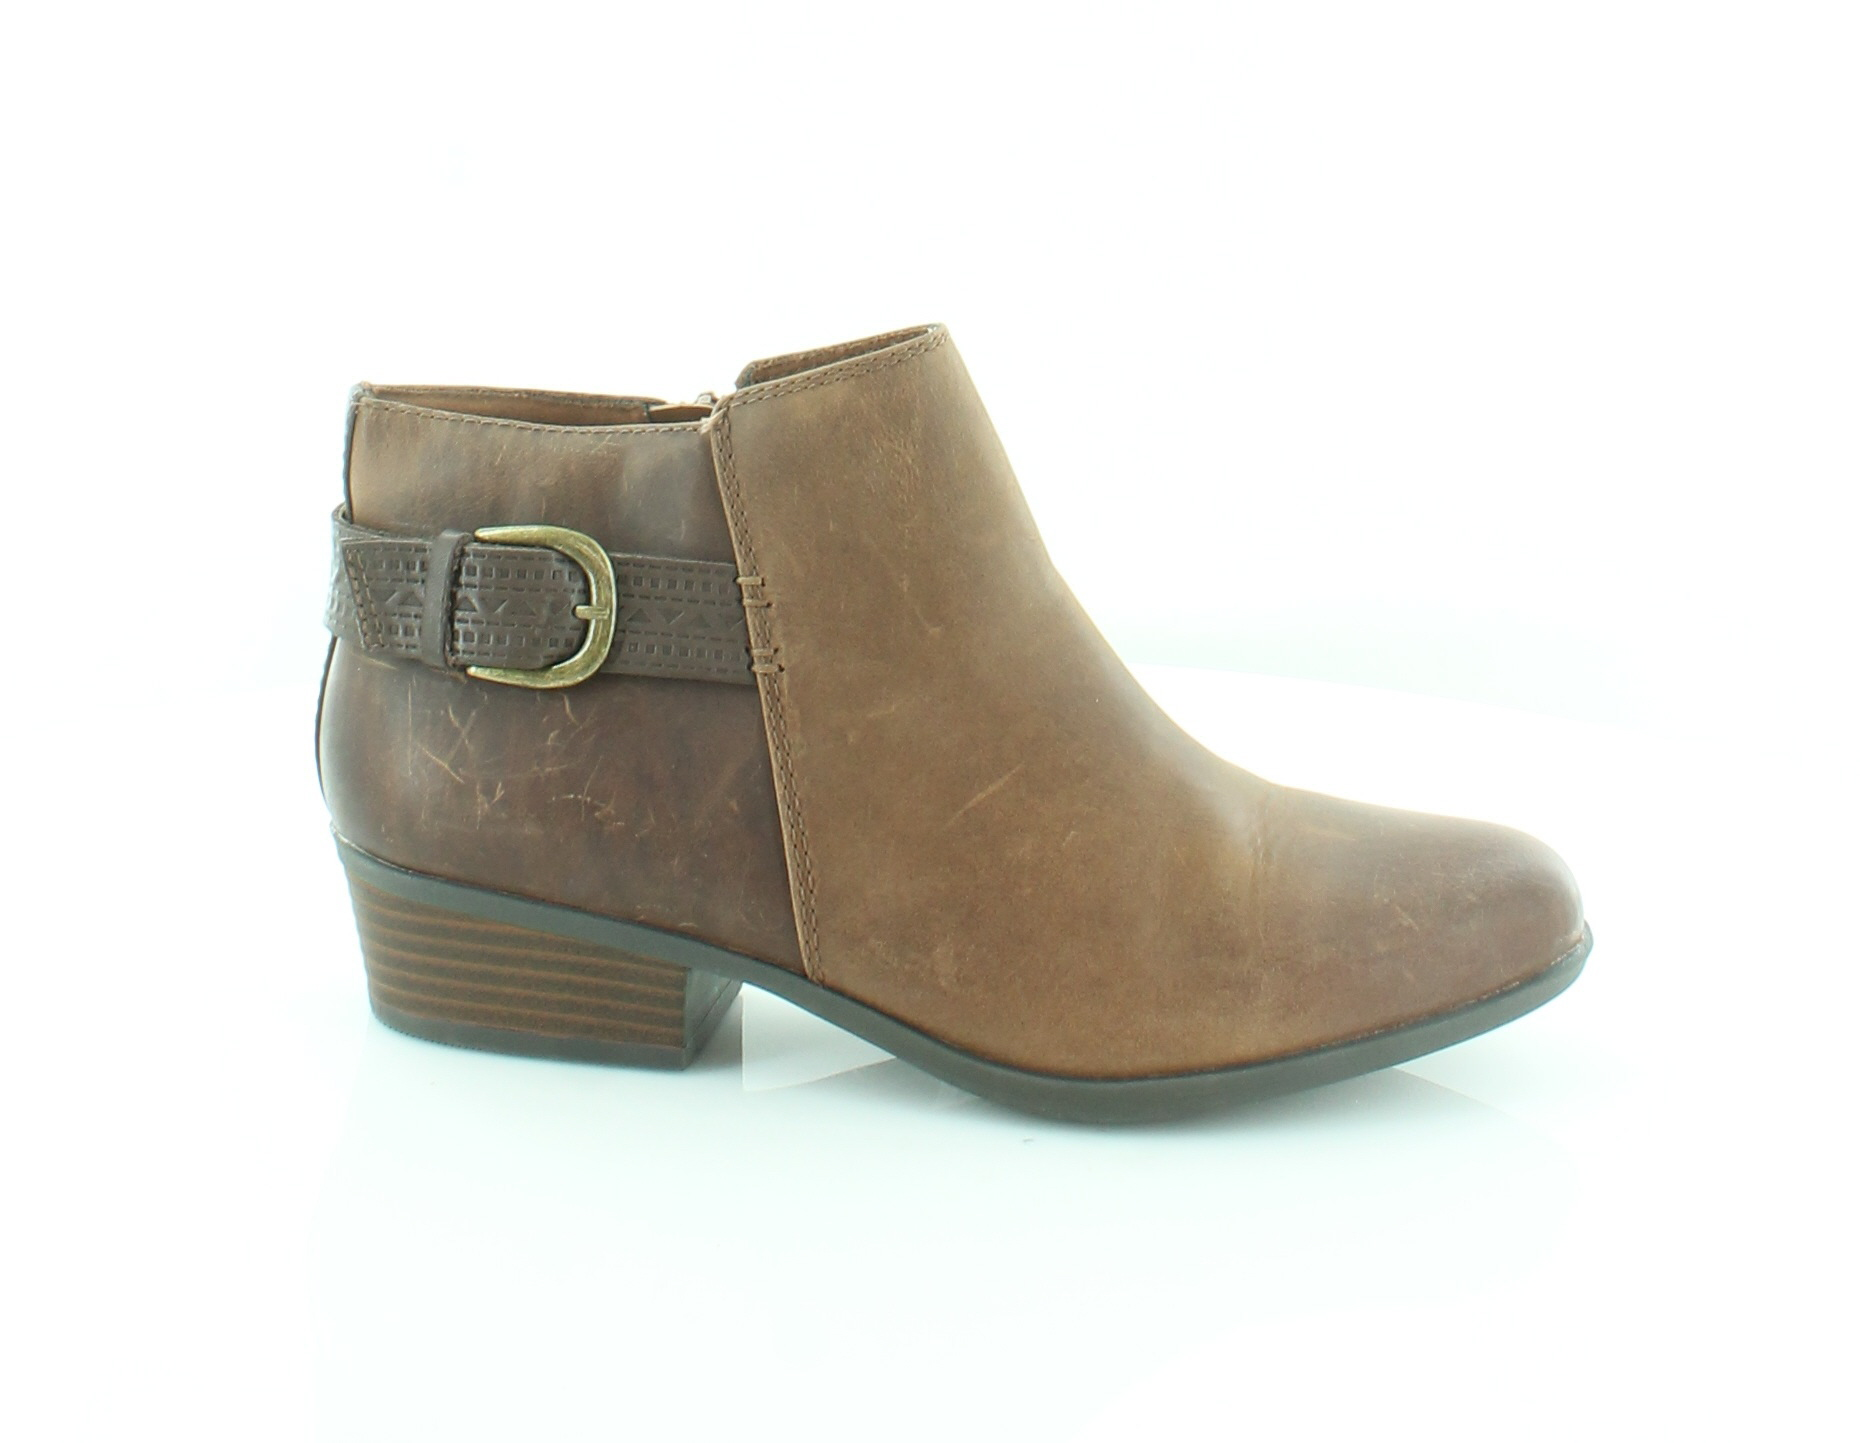 Clarks Addiy Kara Brown Womens Shoes Size 8 M Boots MSRP $135